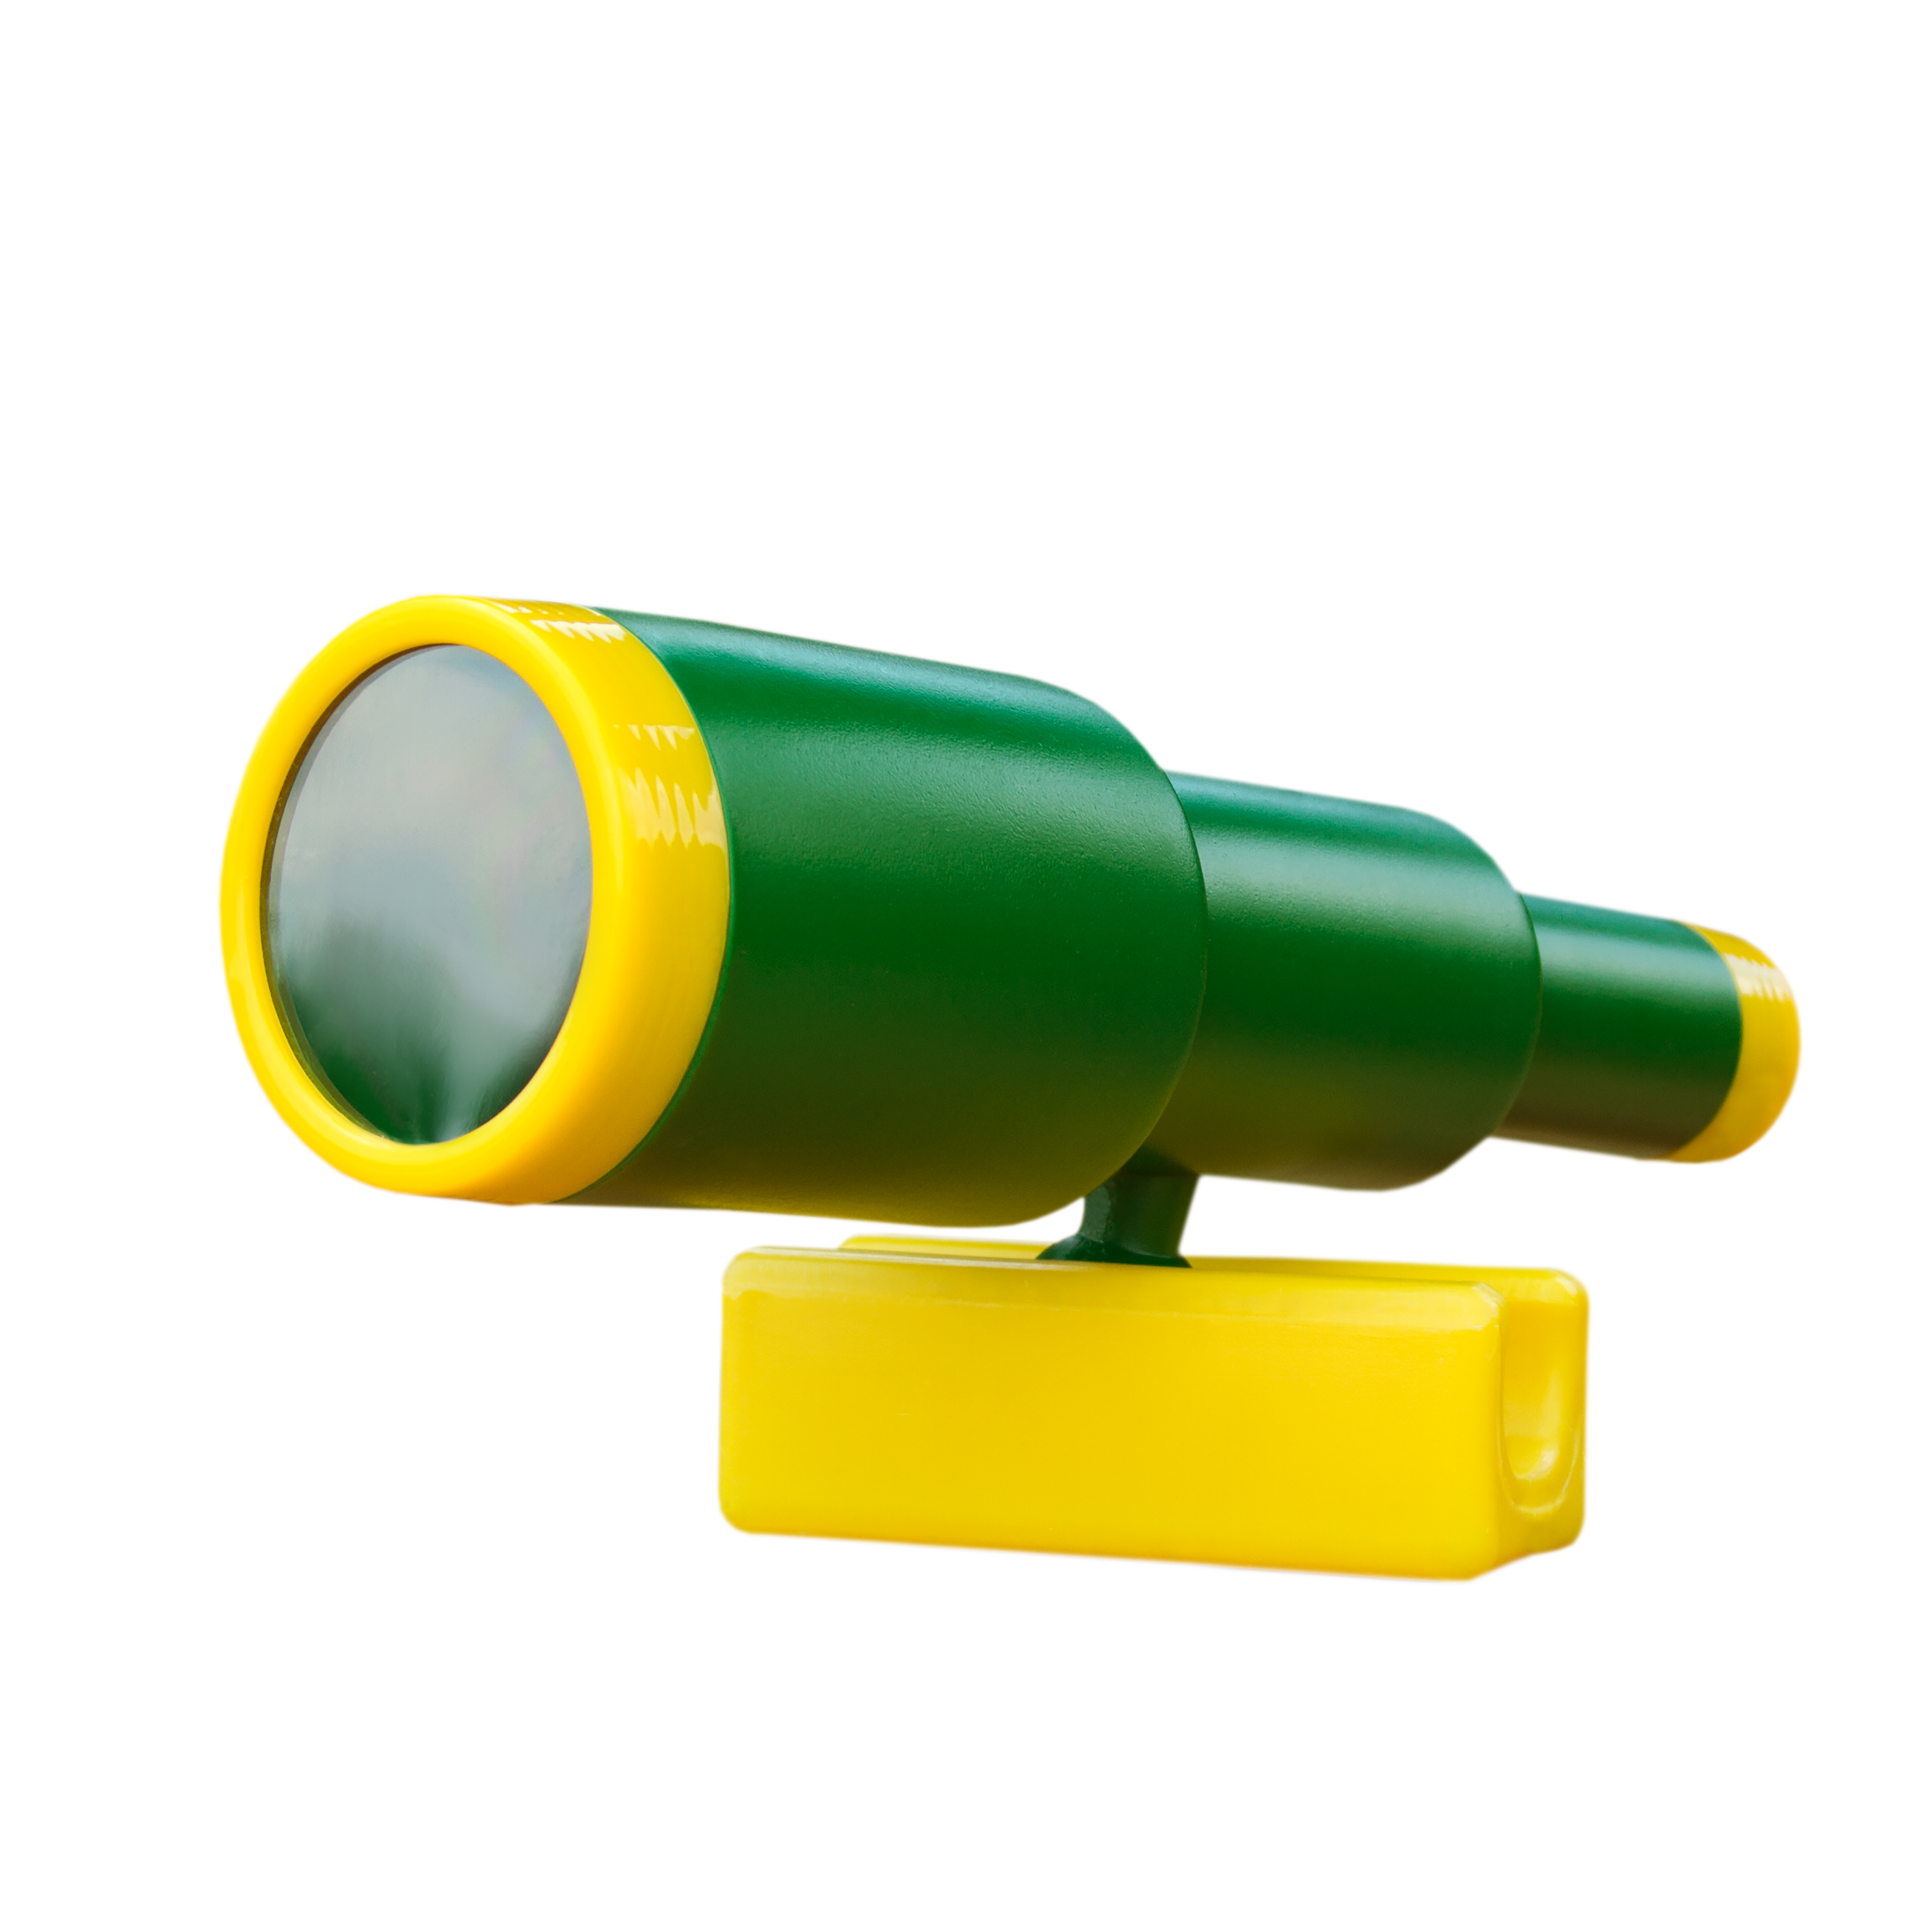 Gorilla Playsets Looney Telescope, Green and Yellow Trim